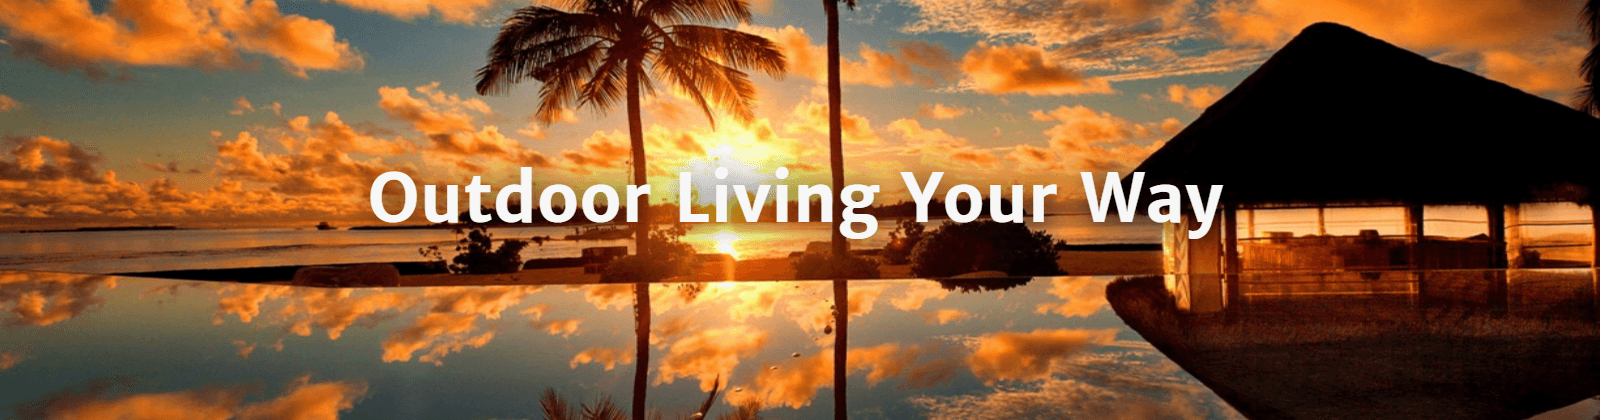 This is the header for OutdoorLivingYourWay.com